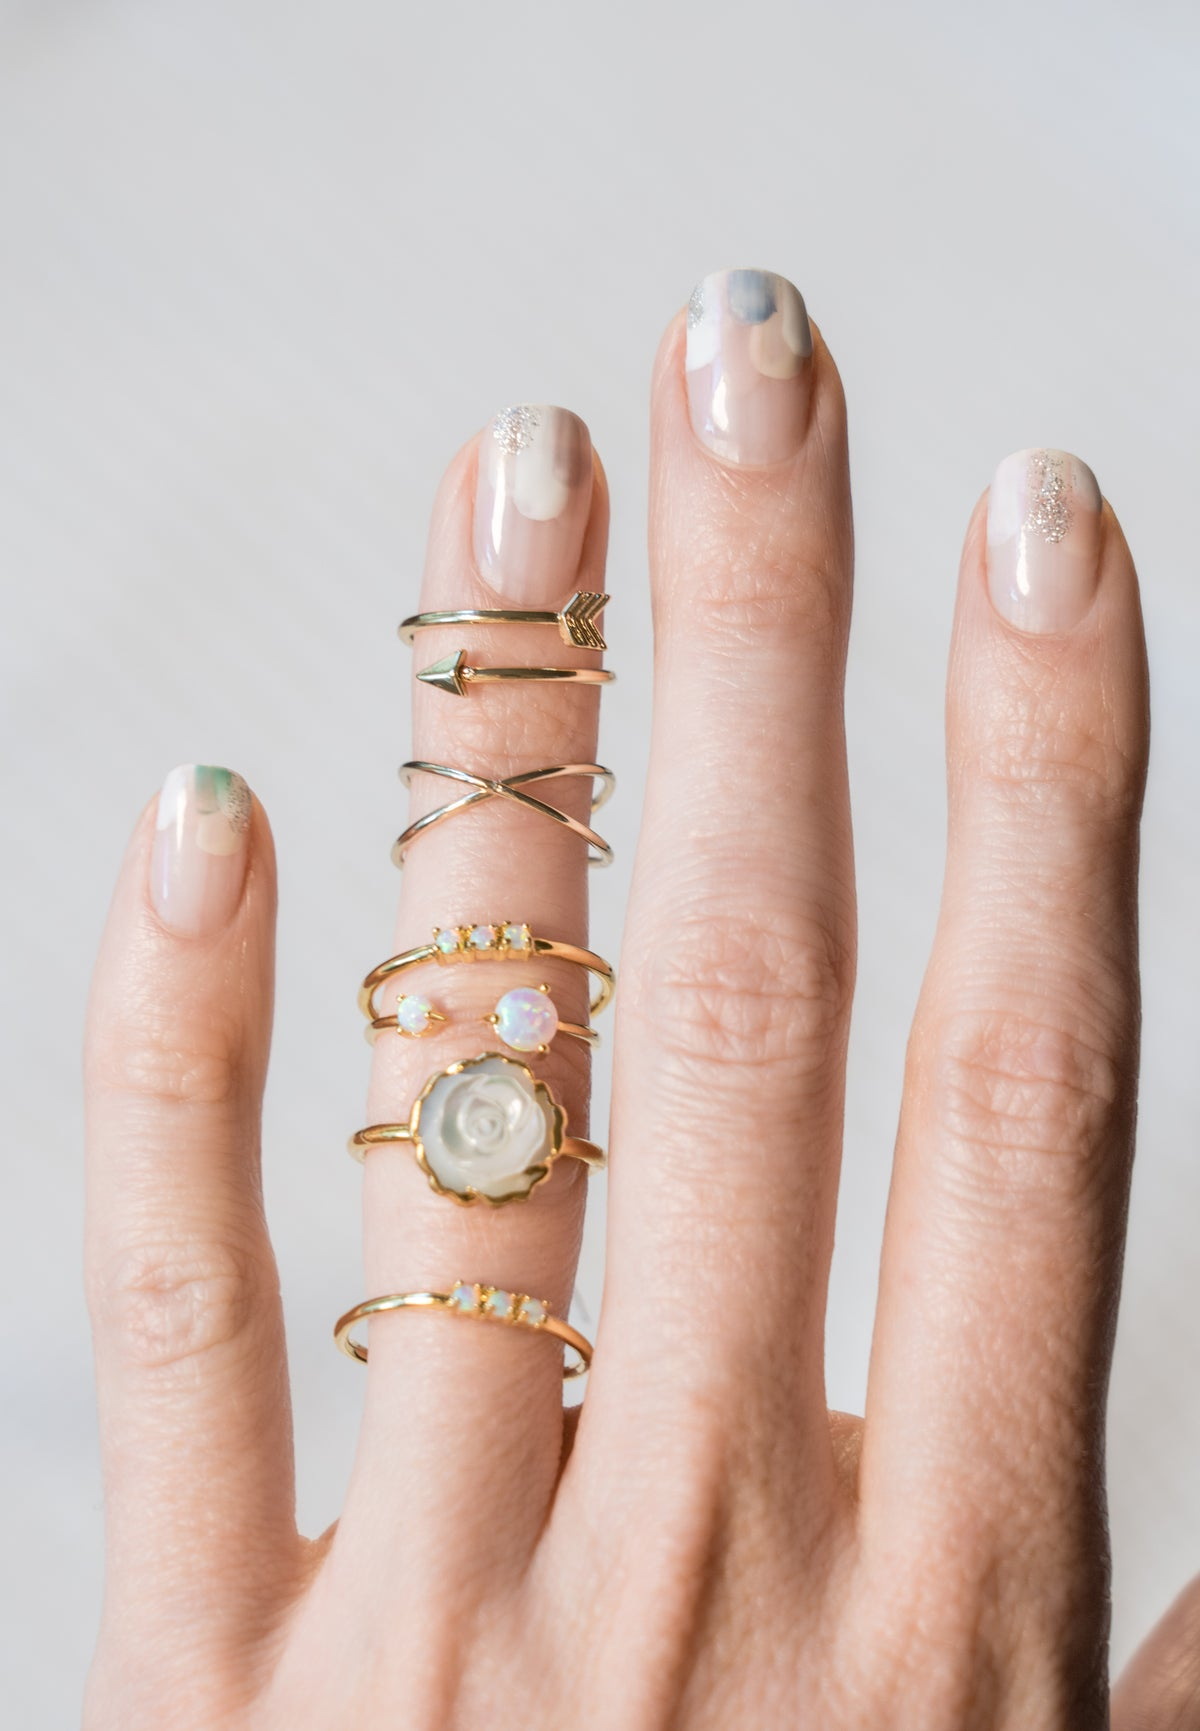 mother of pearl rosette ring and opal ring stacks on model hand